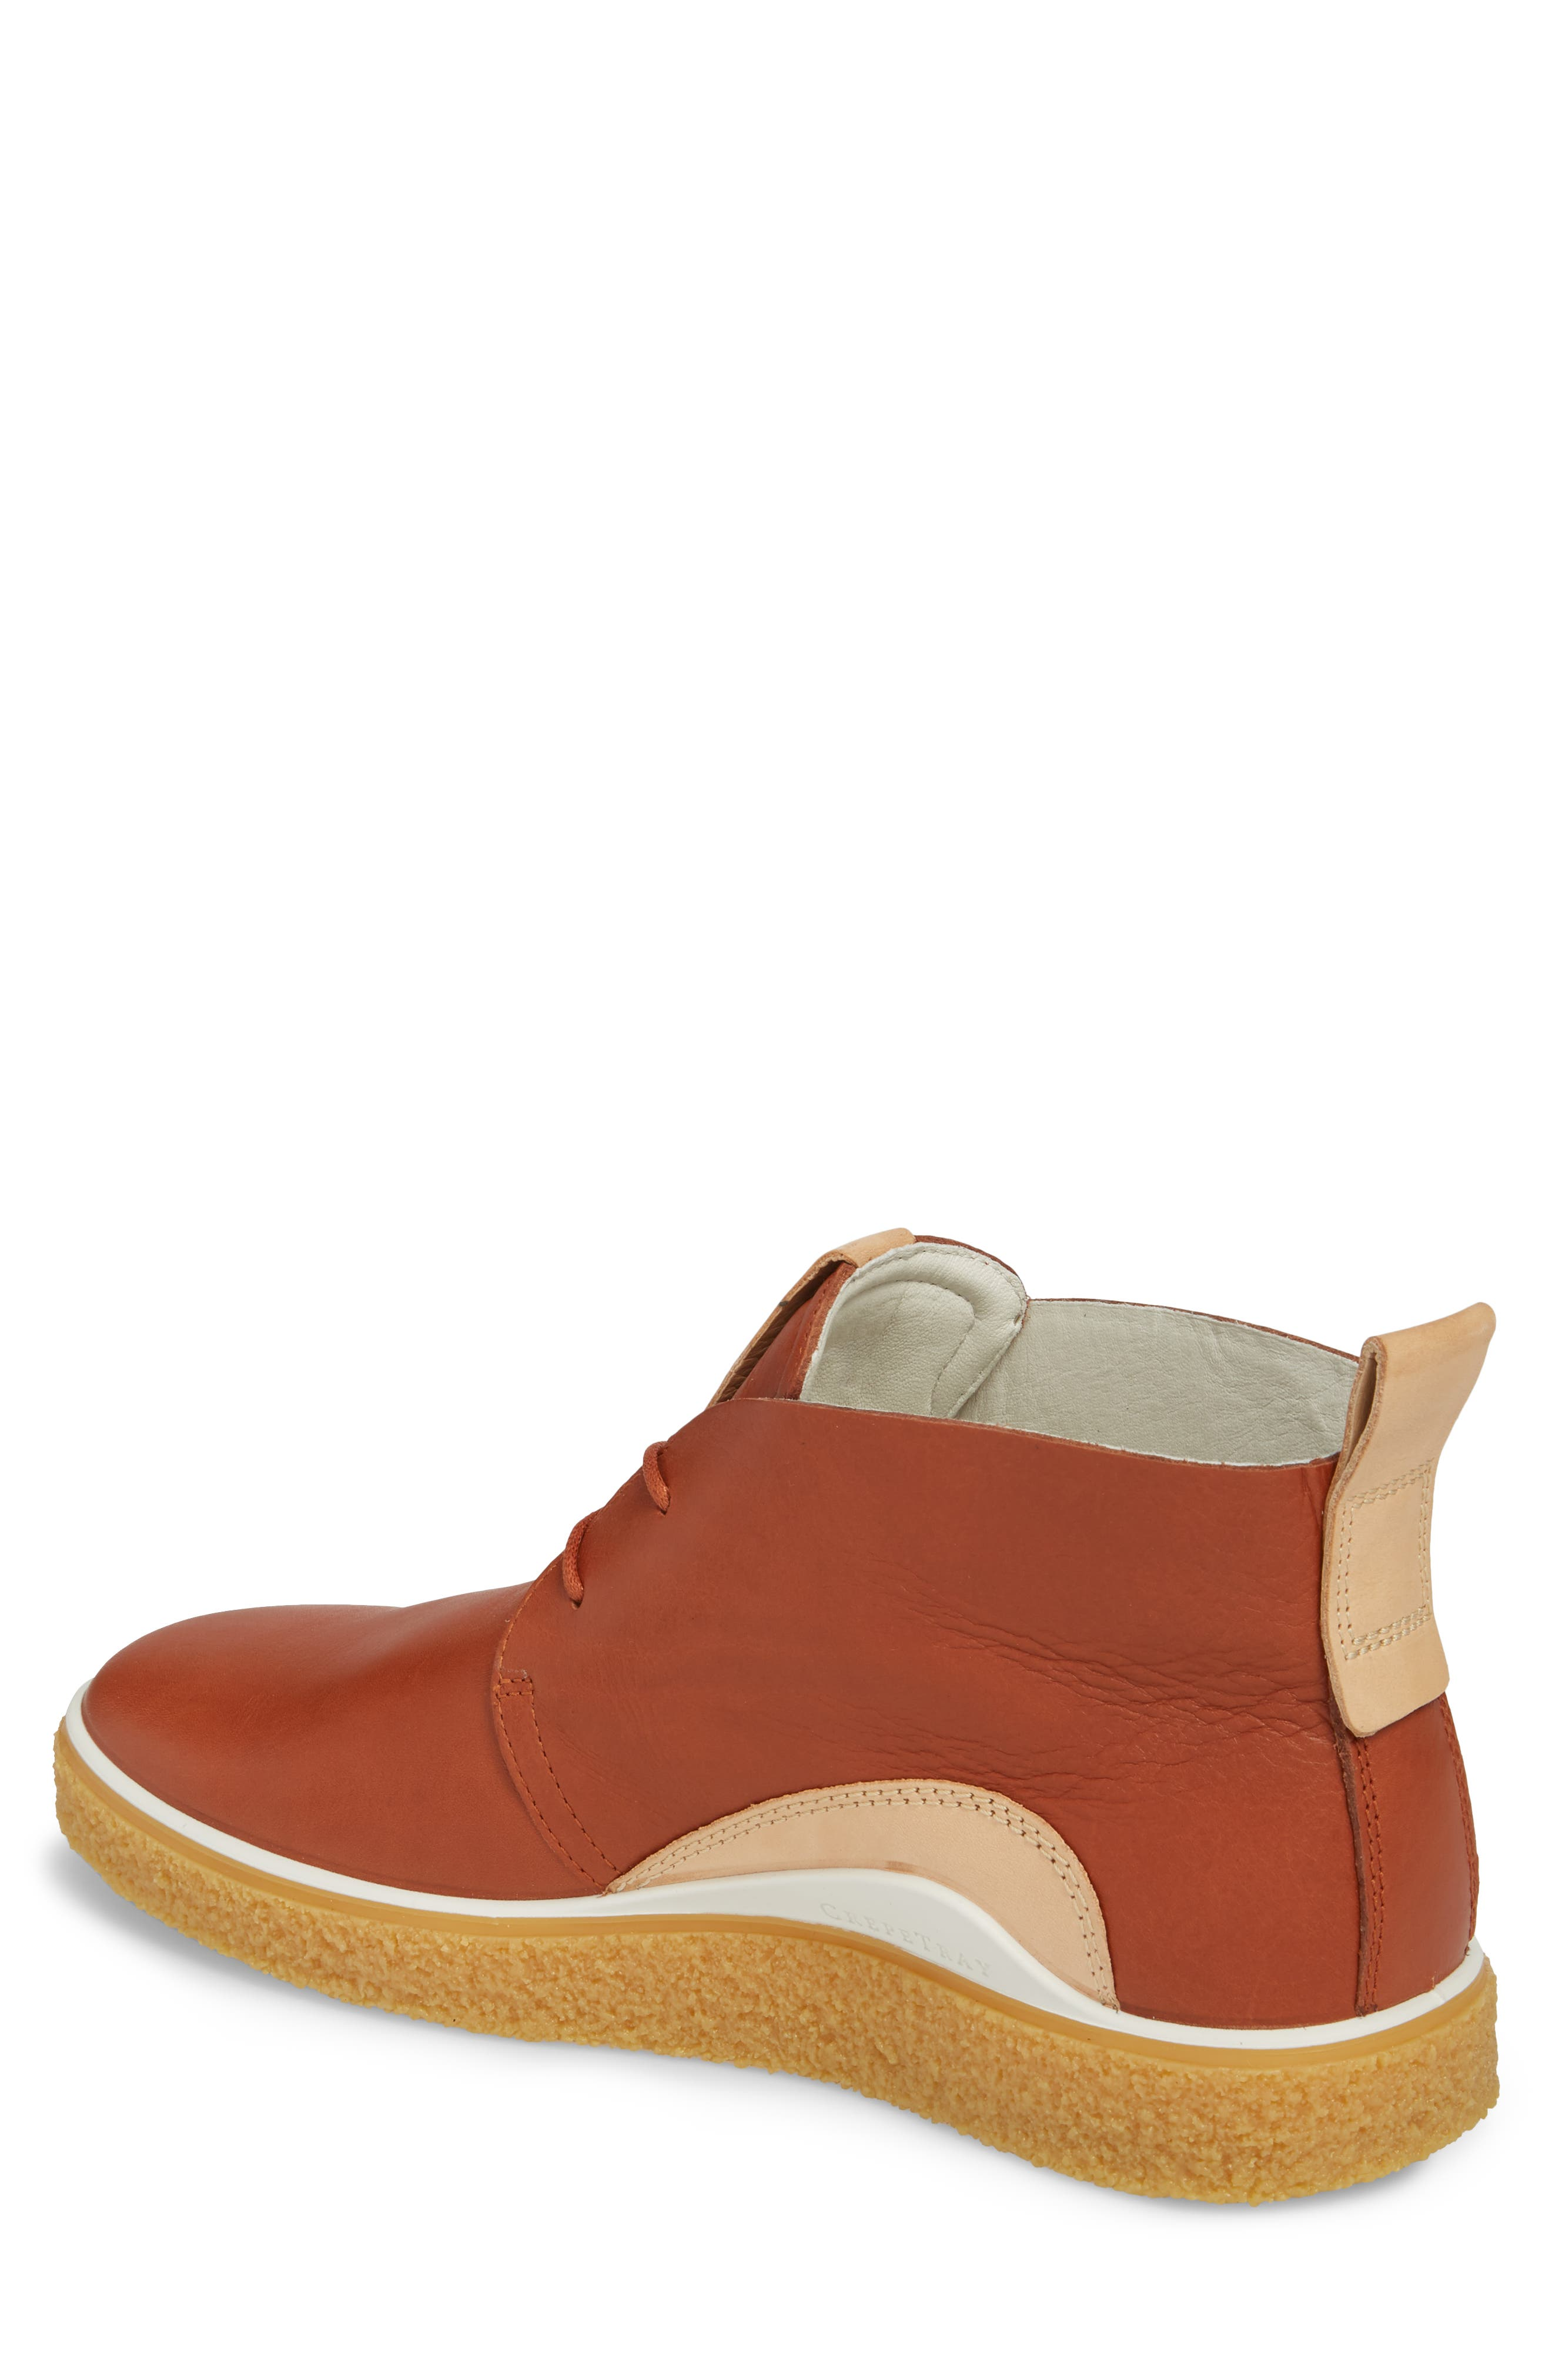 Crepetray Chukka Boot,                             Alternate thumbnail 2, color,                             Brandy Leather